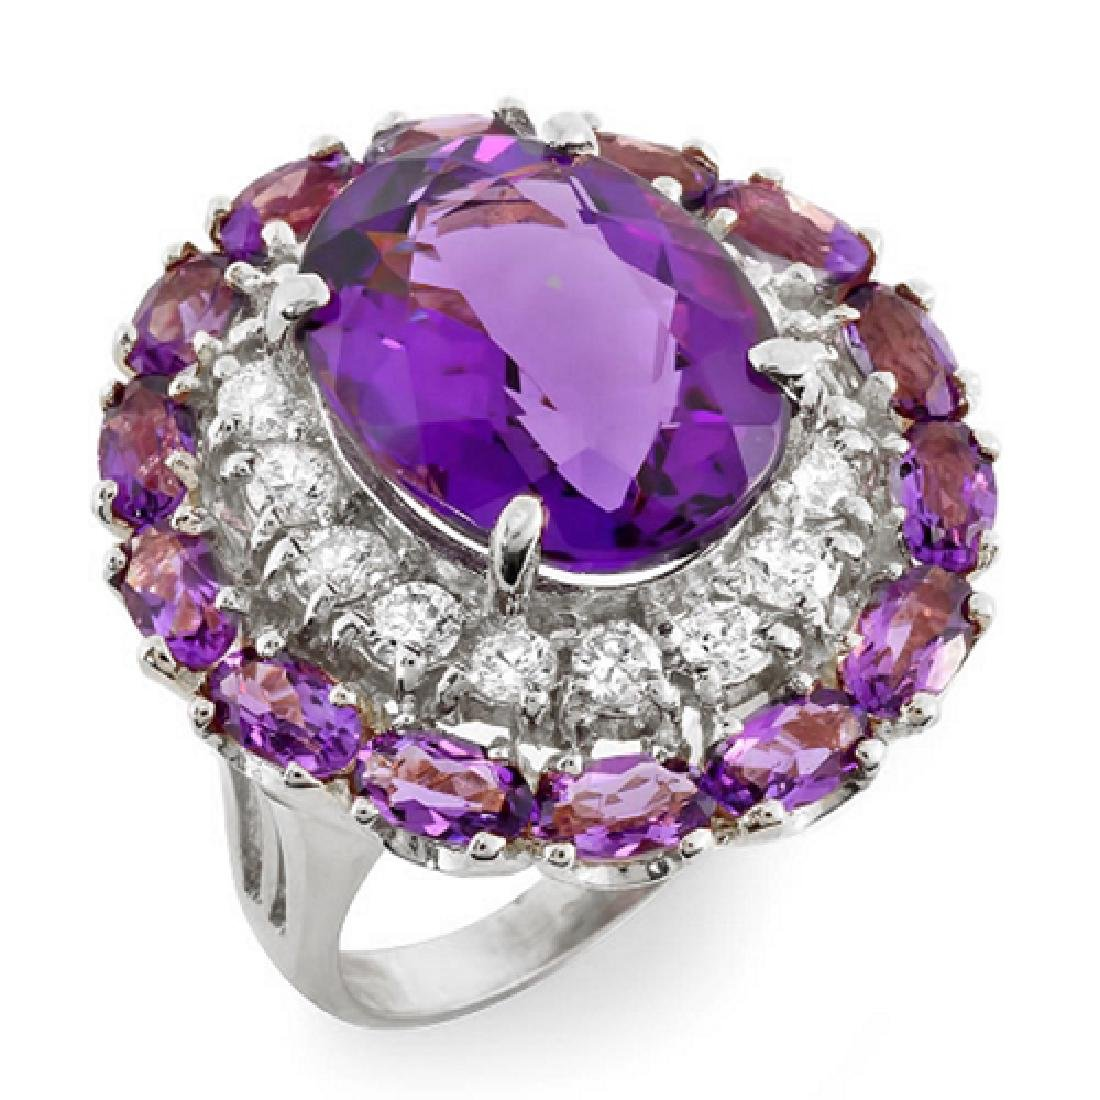 16.07 Carat Natural Amethyst 18K Solid White Gold - 2